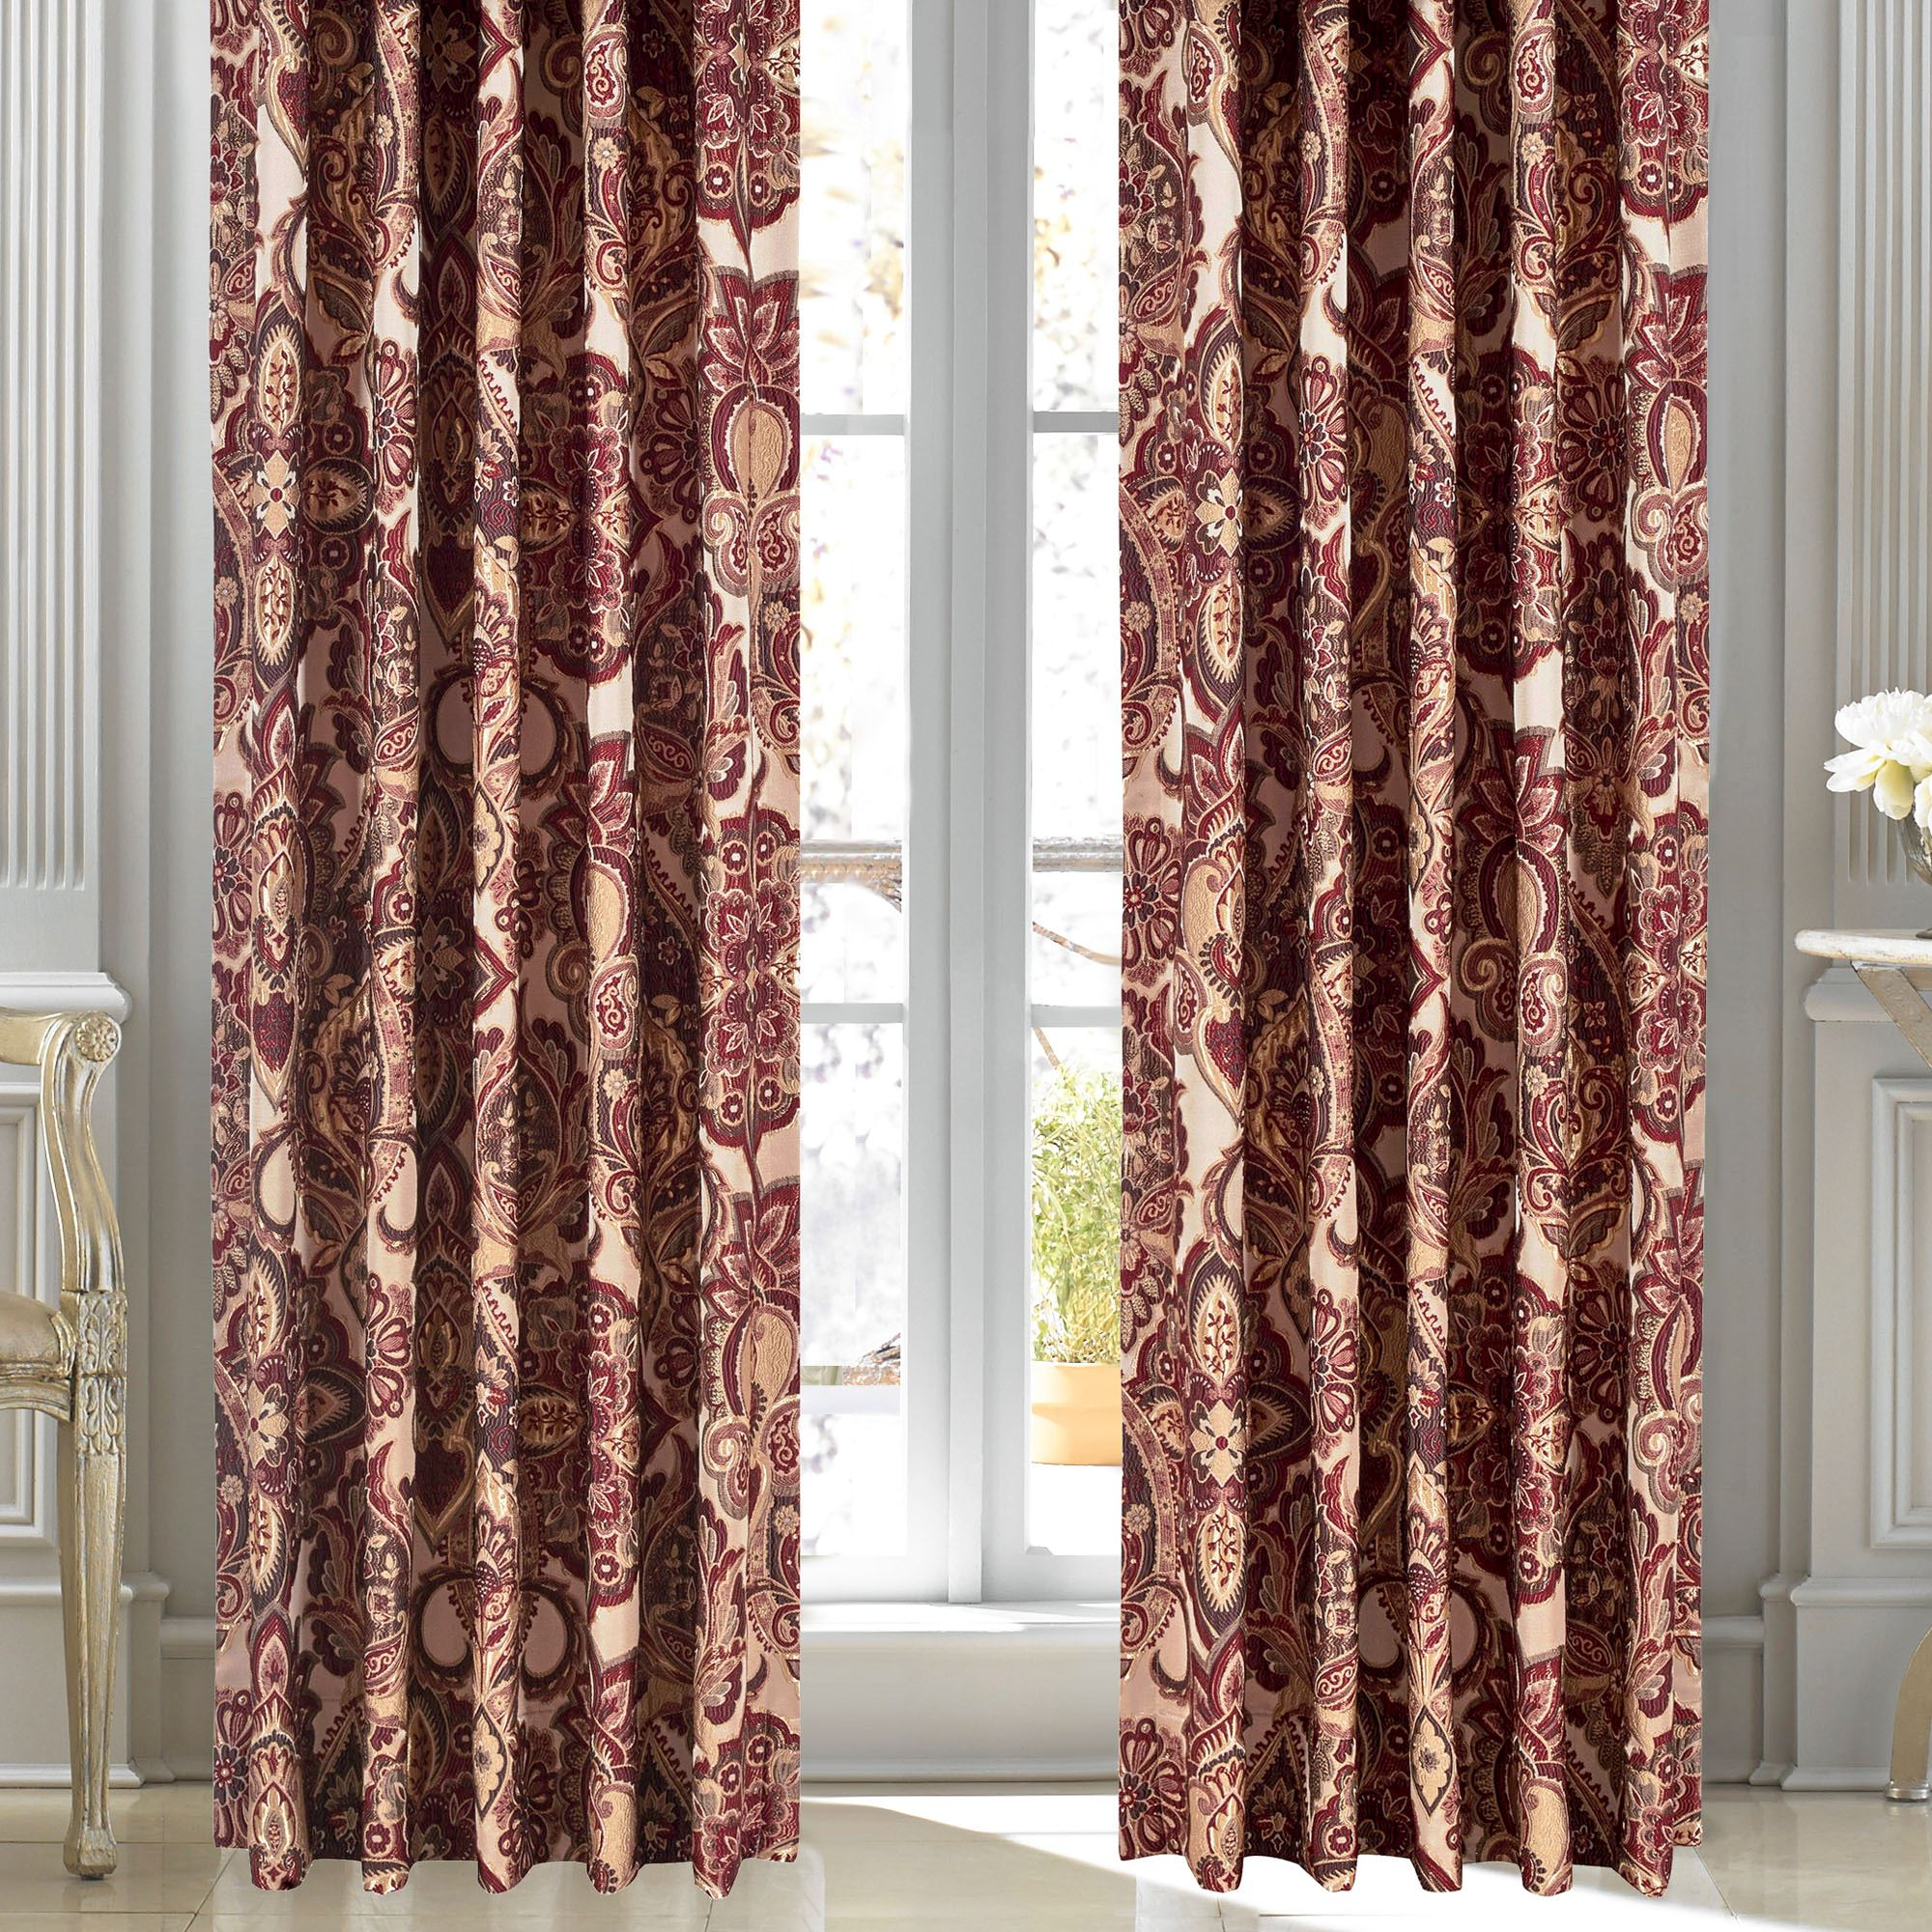 treatment by scroll tailored curtains x j new p curtain v silver queen babylon window pair york